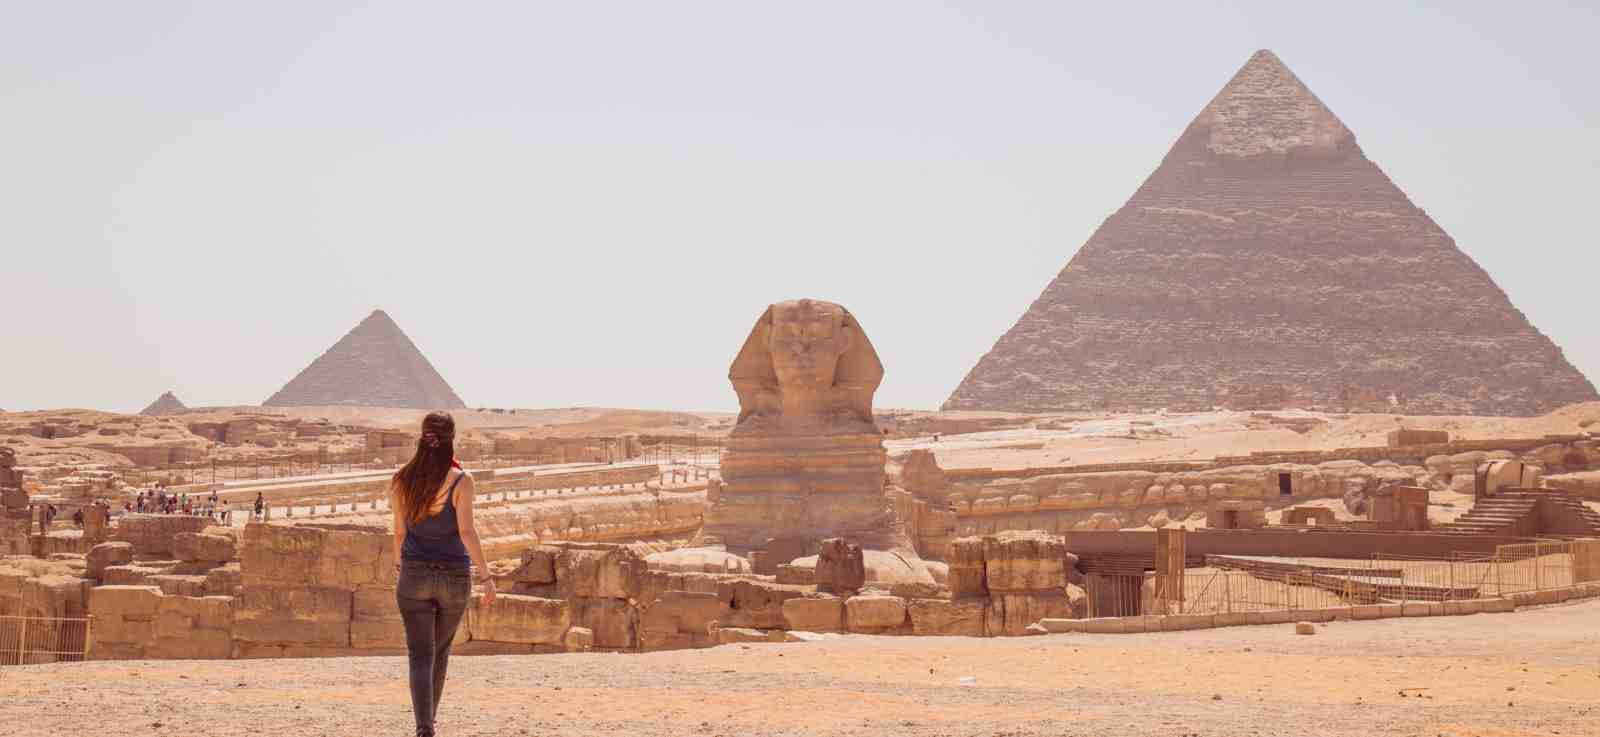 Young woman standing in front of the Great Sphinx of Giza with the Pyramids in the background